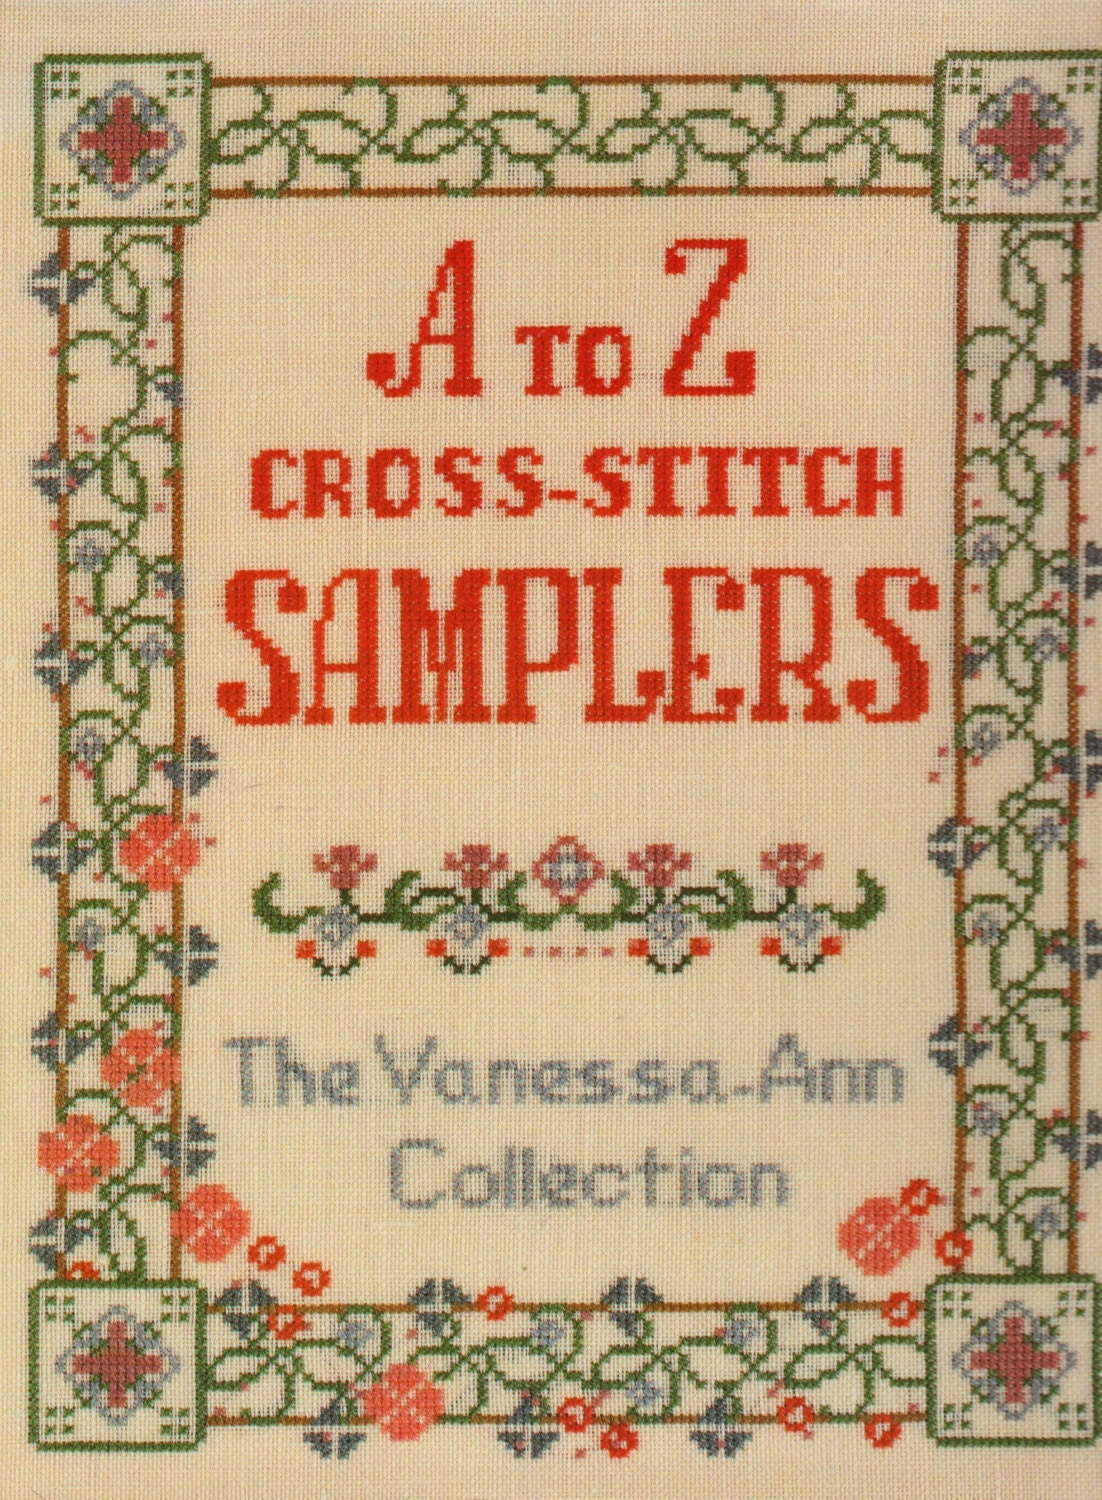 A to z cross stitch samplers book